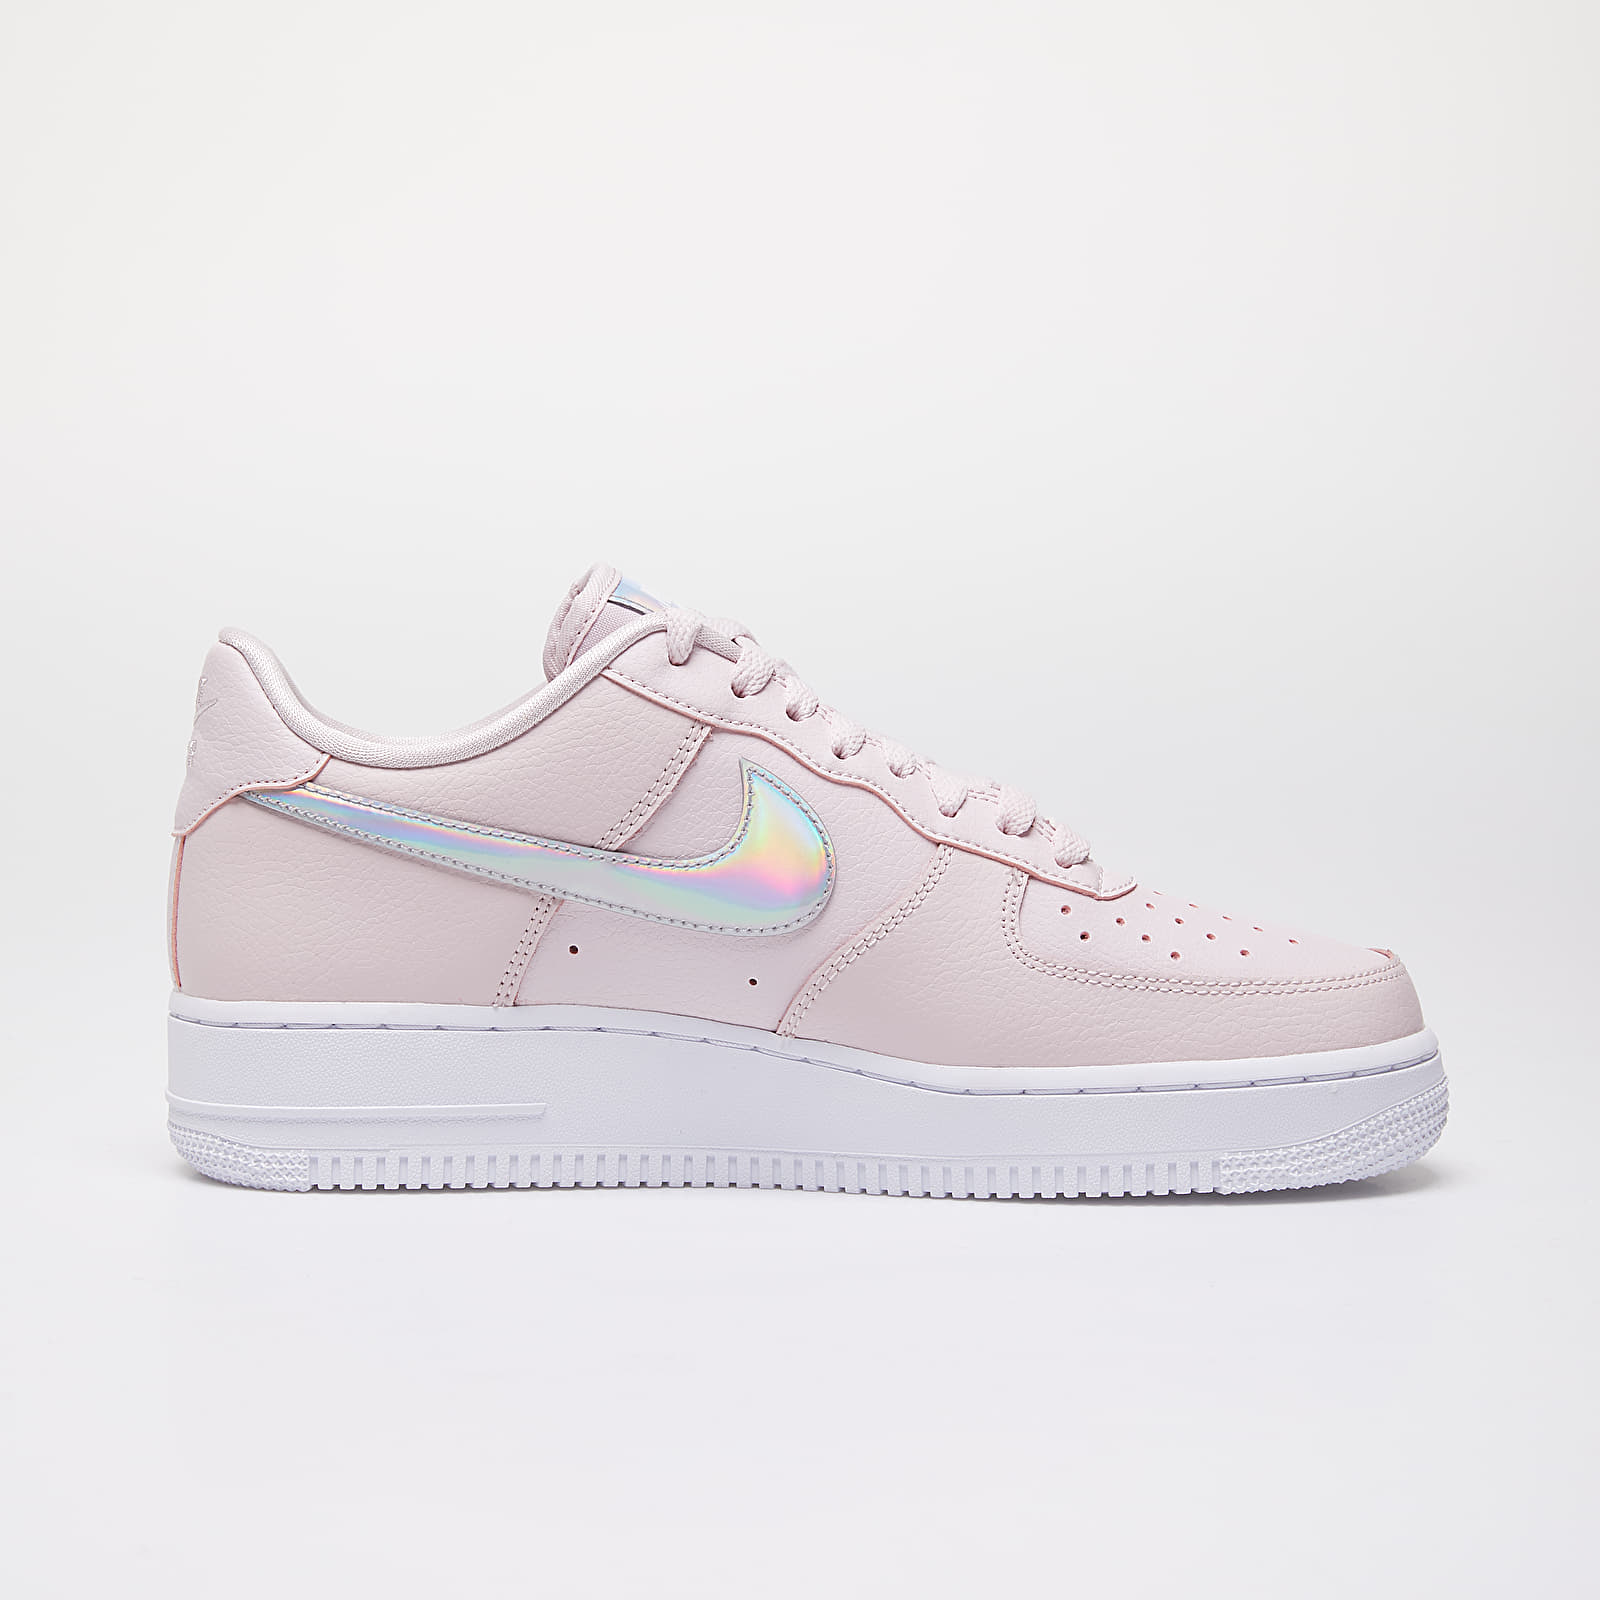 Nike Wmns Air Force 1 '07 Essential Barely Rose Barely Rose White   Footshop